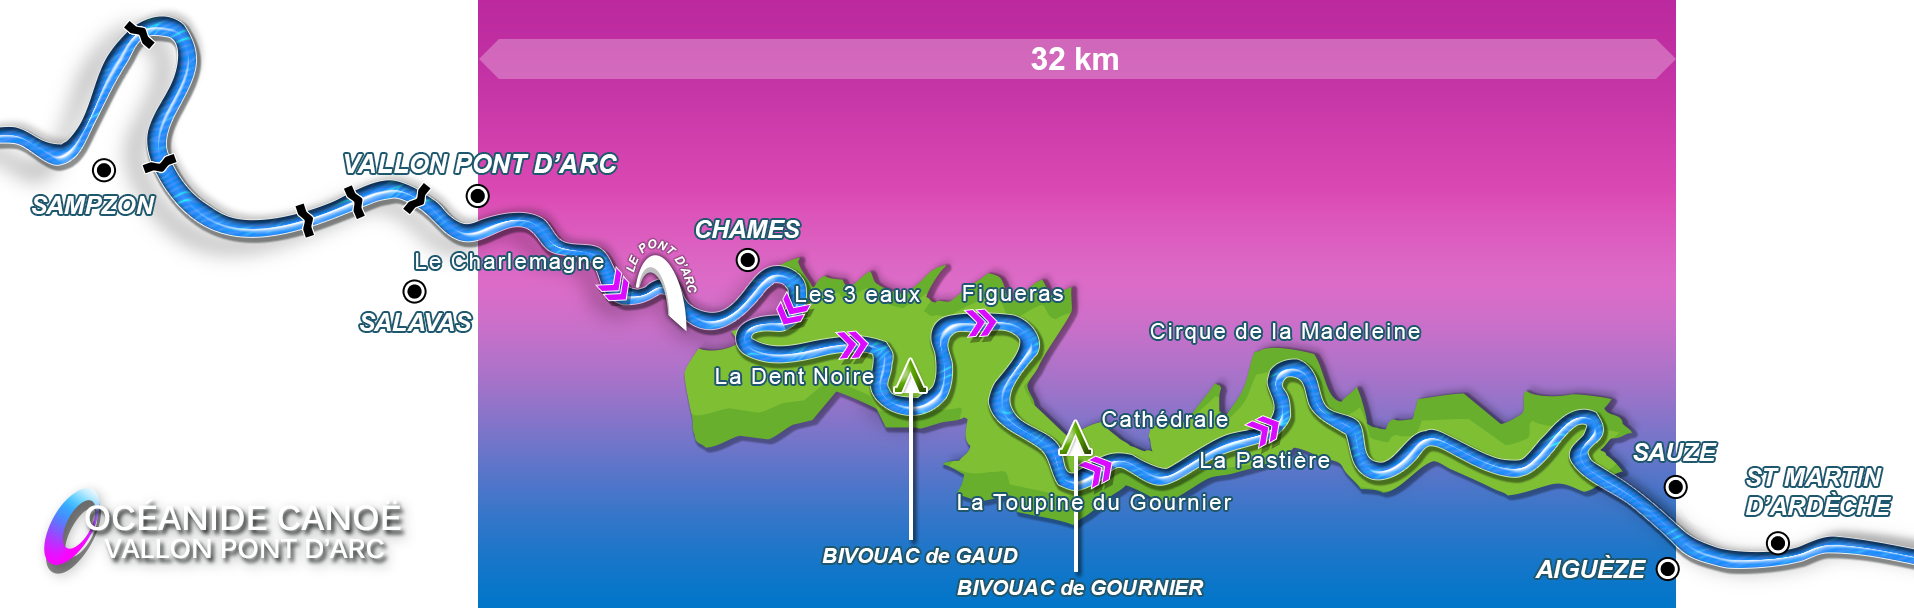 Descent map 32 km